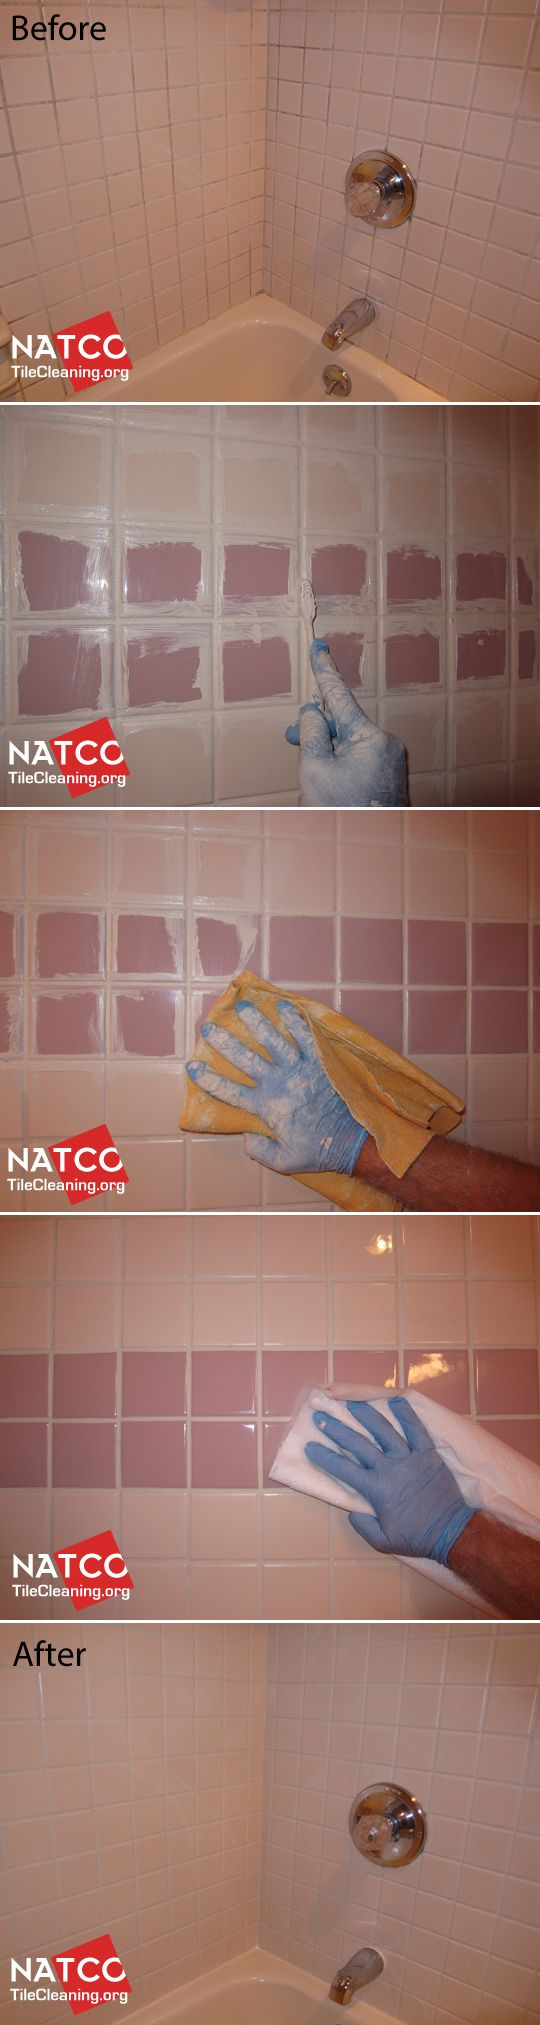 Restoring a tile shower with moldy grout by cleaning and colorsealing the grout.